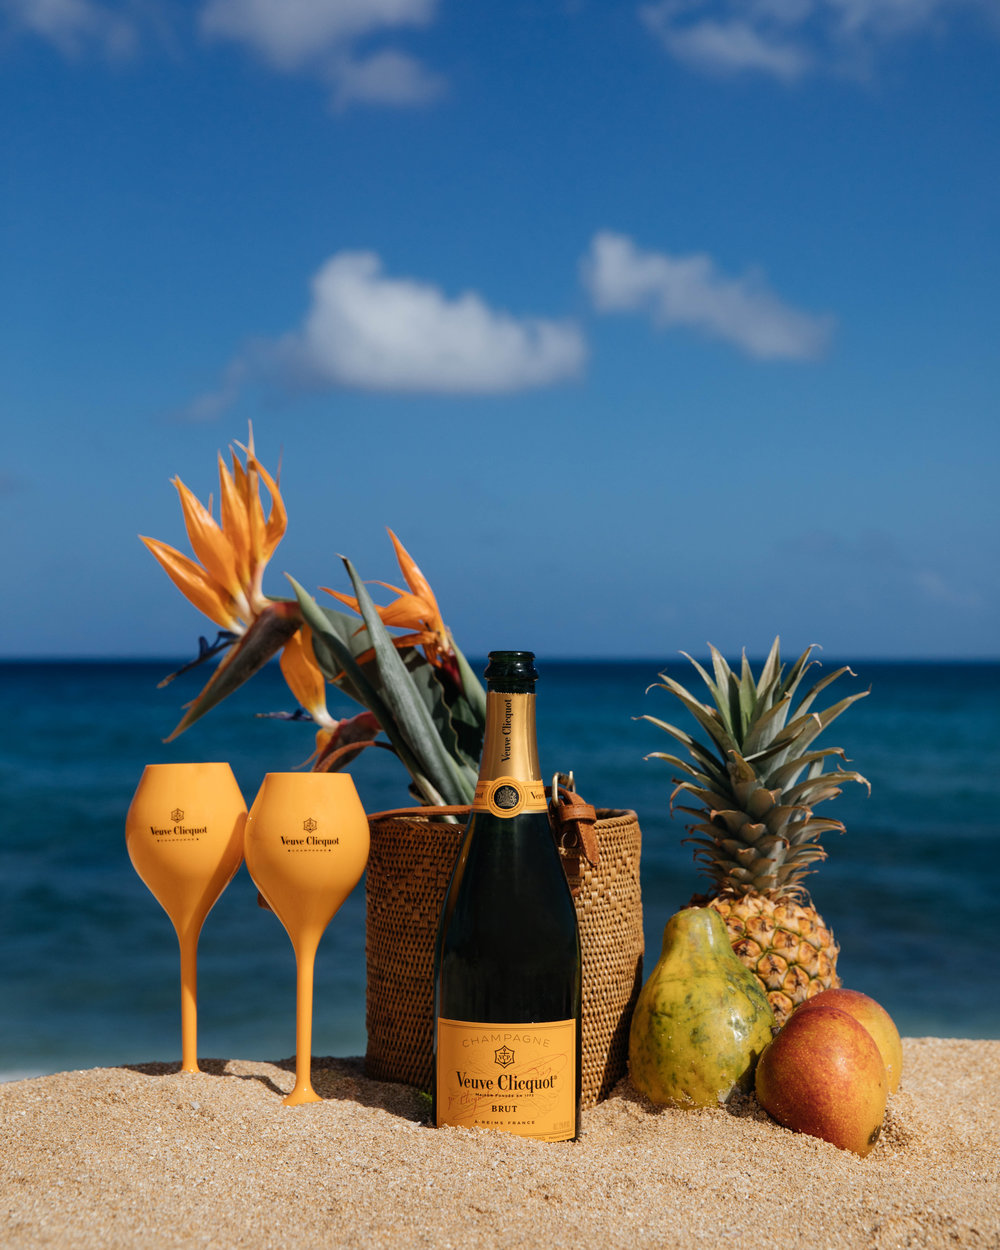 veuve-clicquot-july-4th-302.jpg